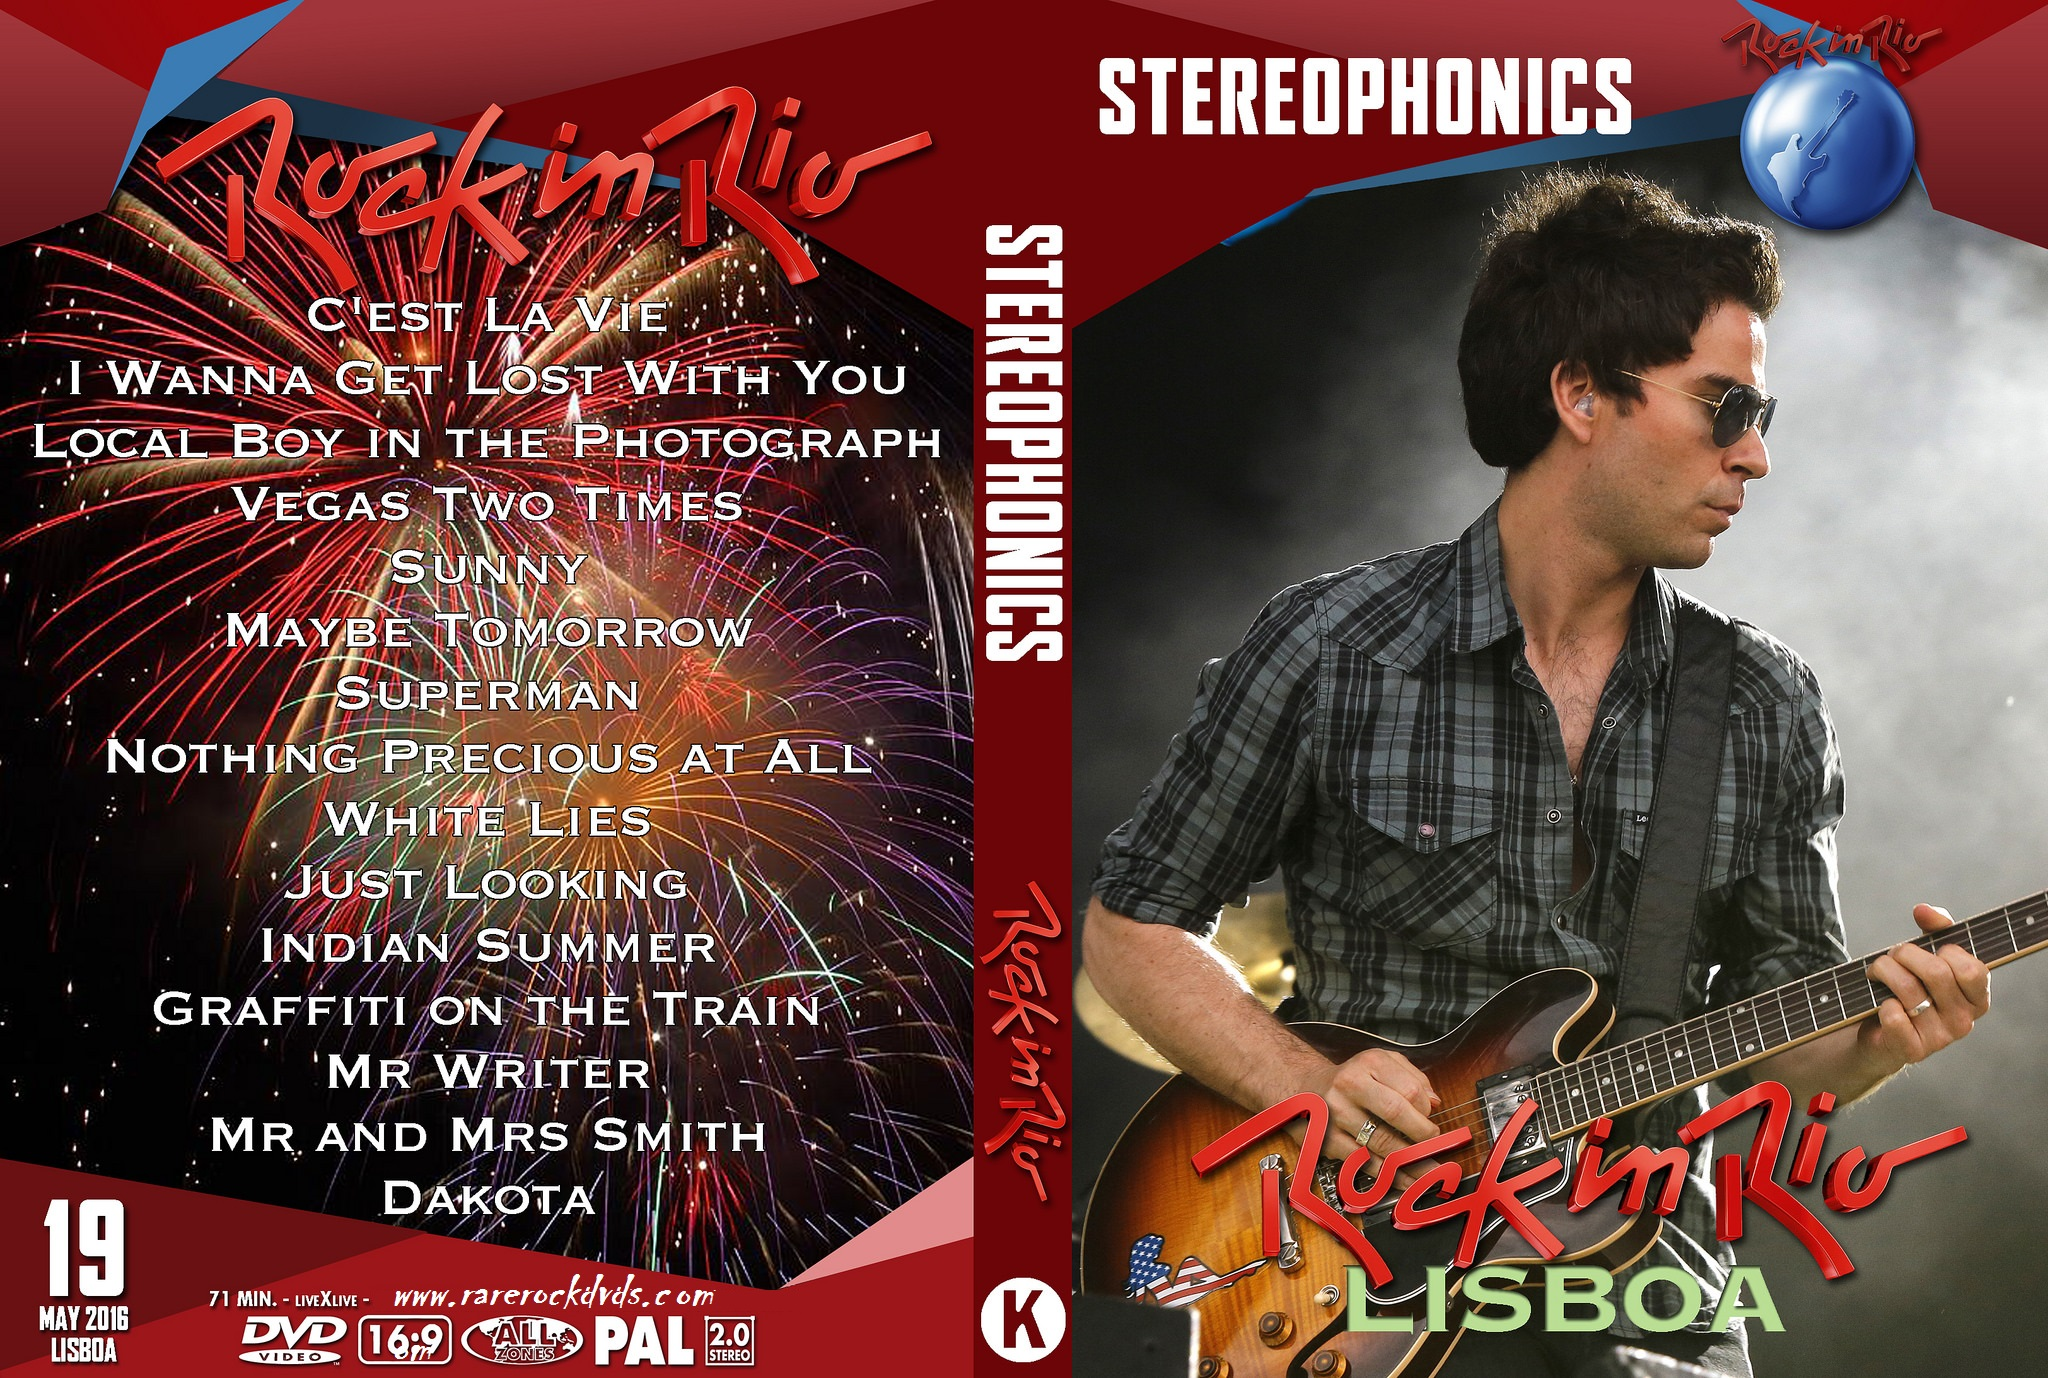 Stereophonics - Rock in Rio Lisbon 2016 DVD